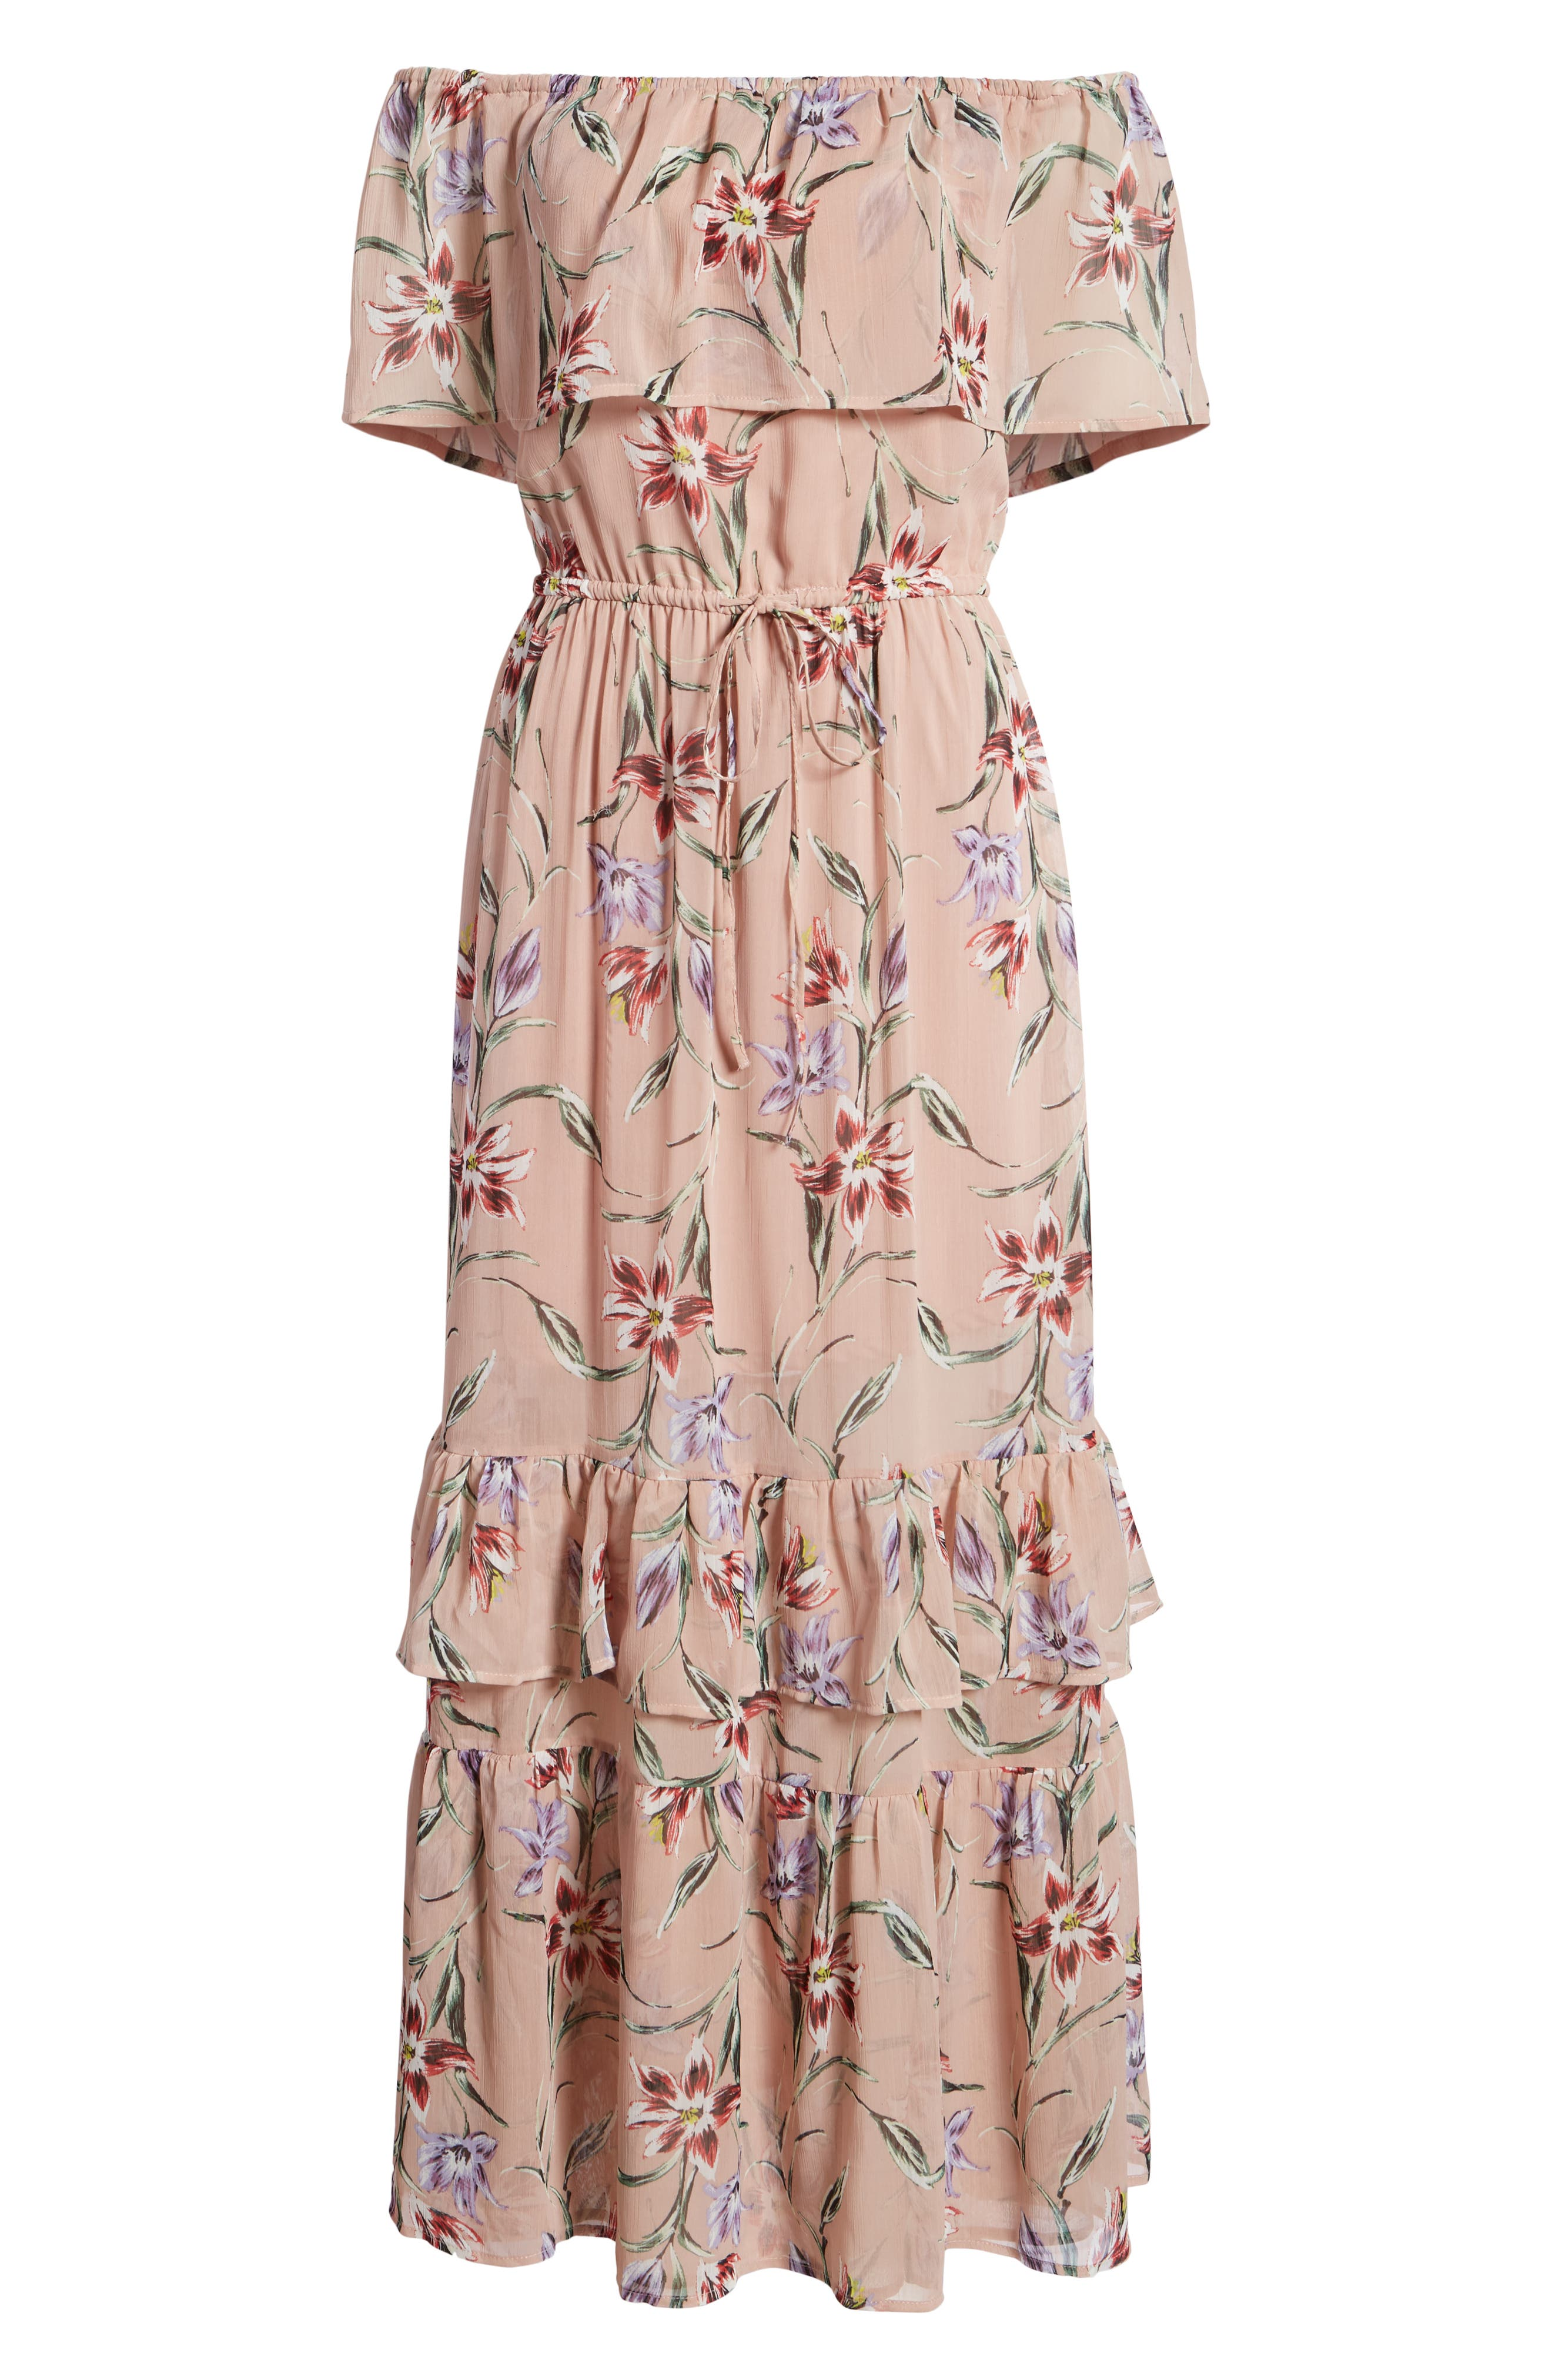 Off the Shoulder Maxi Dress,                             Alternate thumbnail 7, color,                             Nude Floral